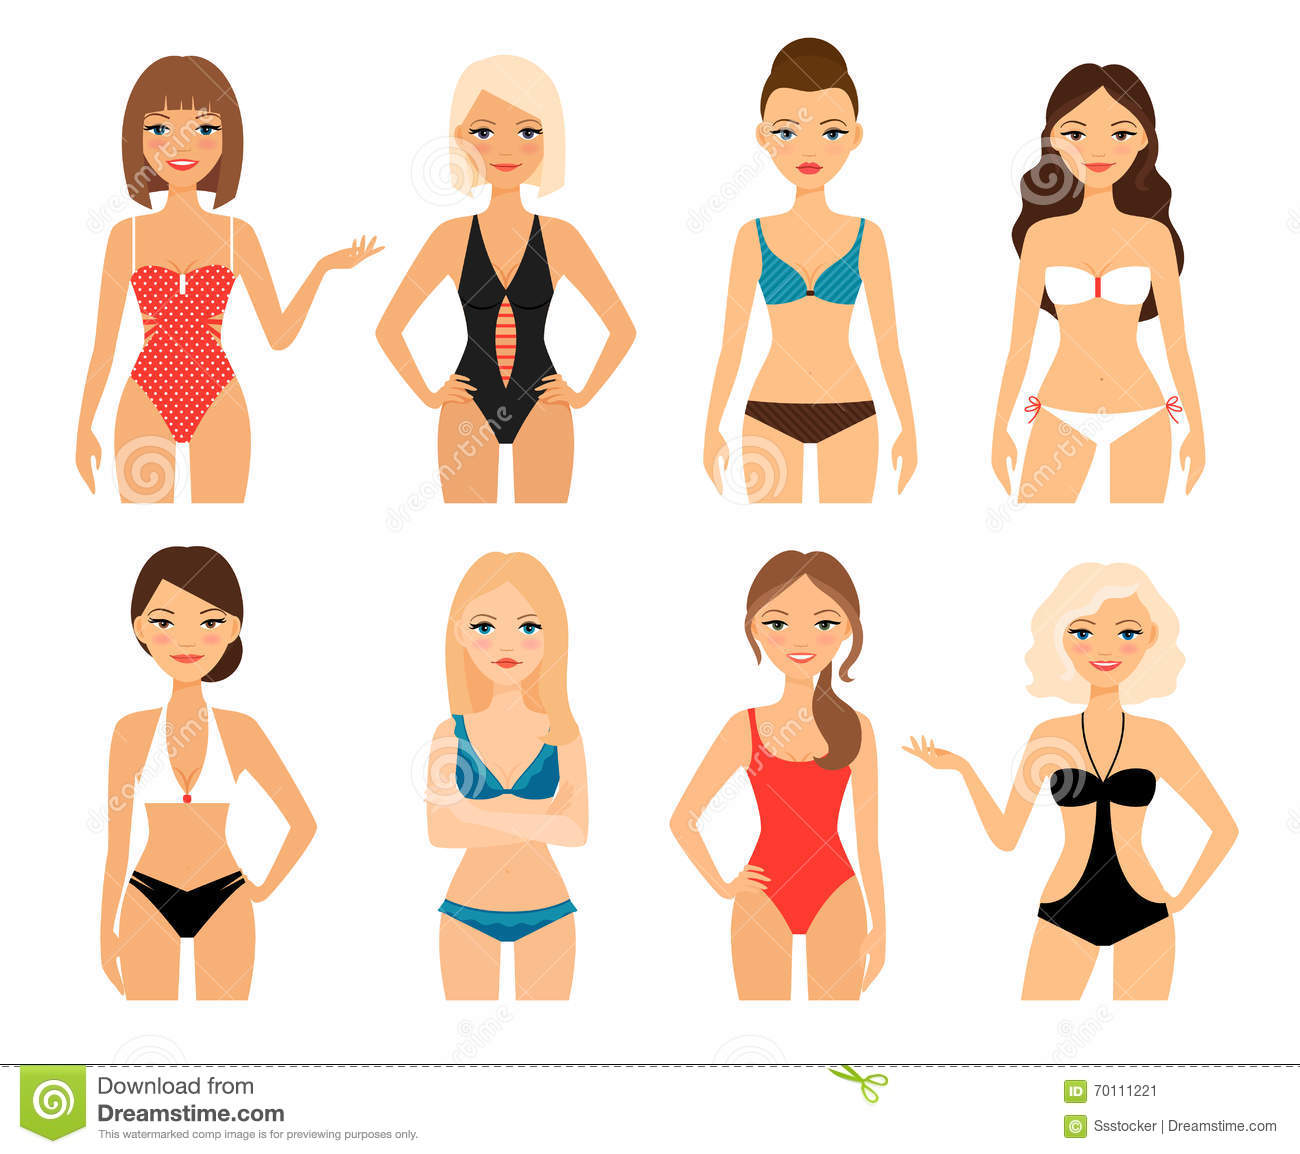 Women In Swimsuit Stock Vector - Image: 70111221